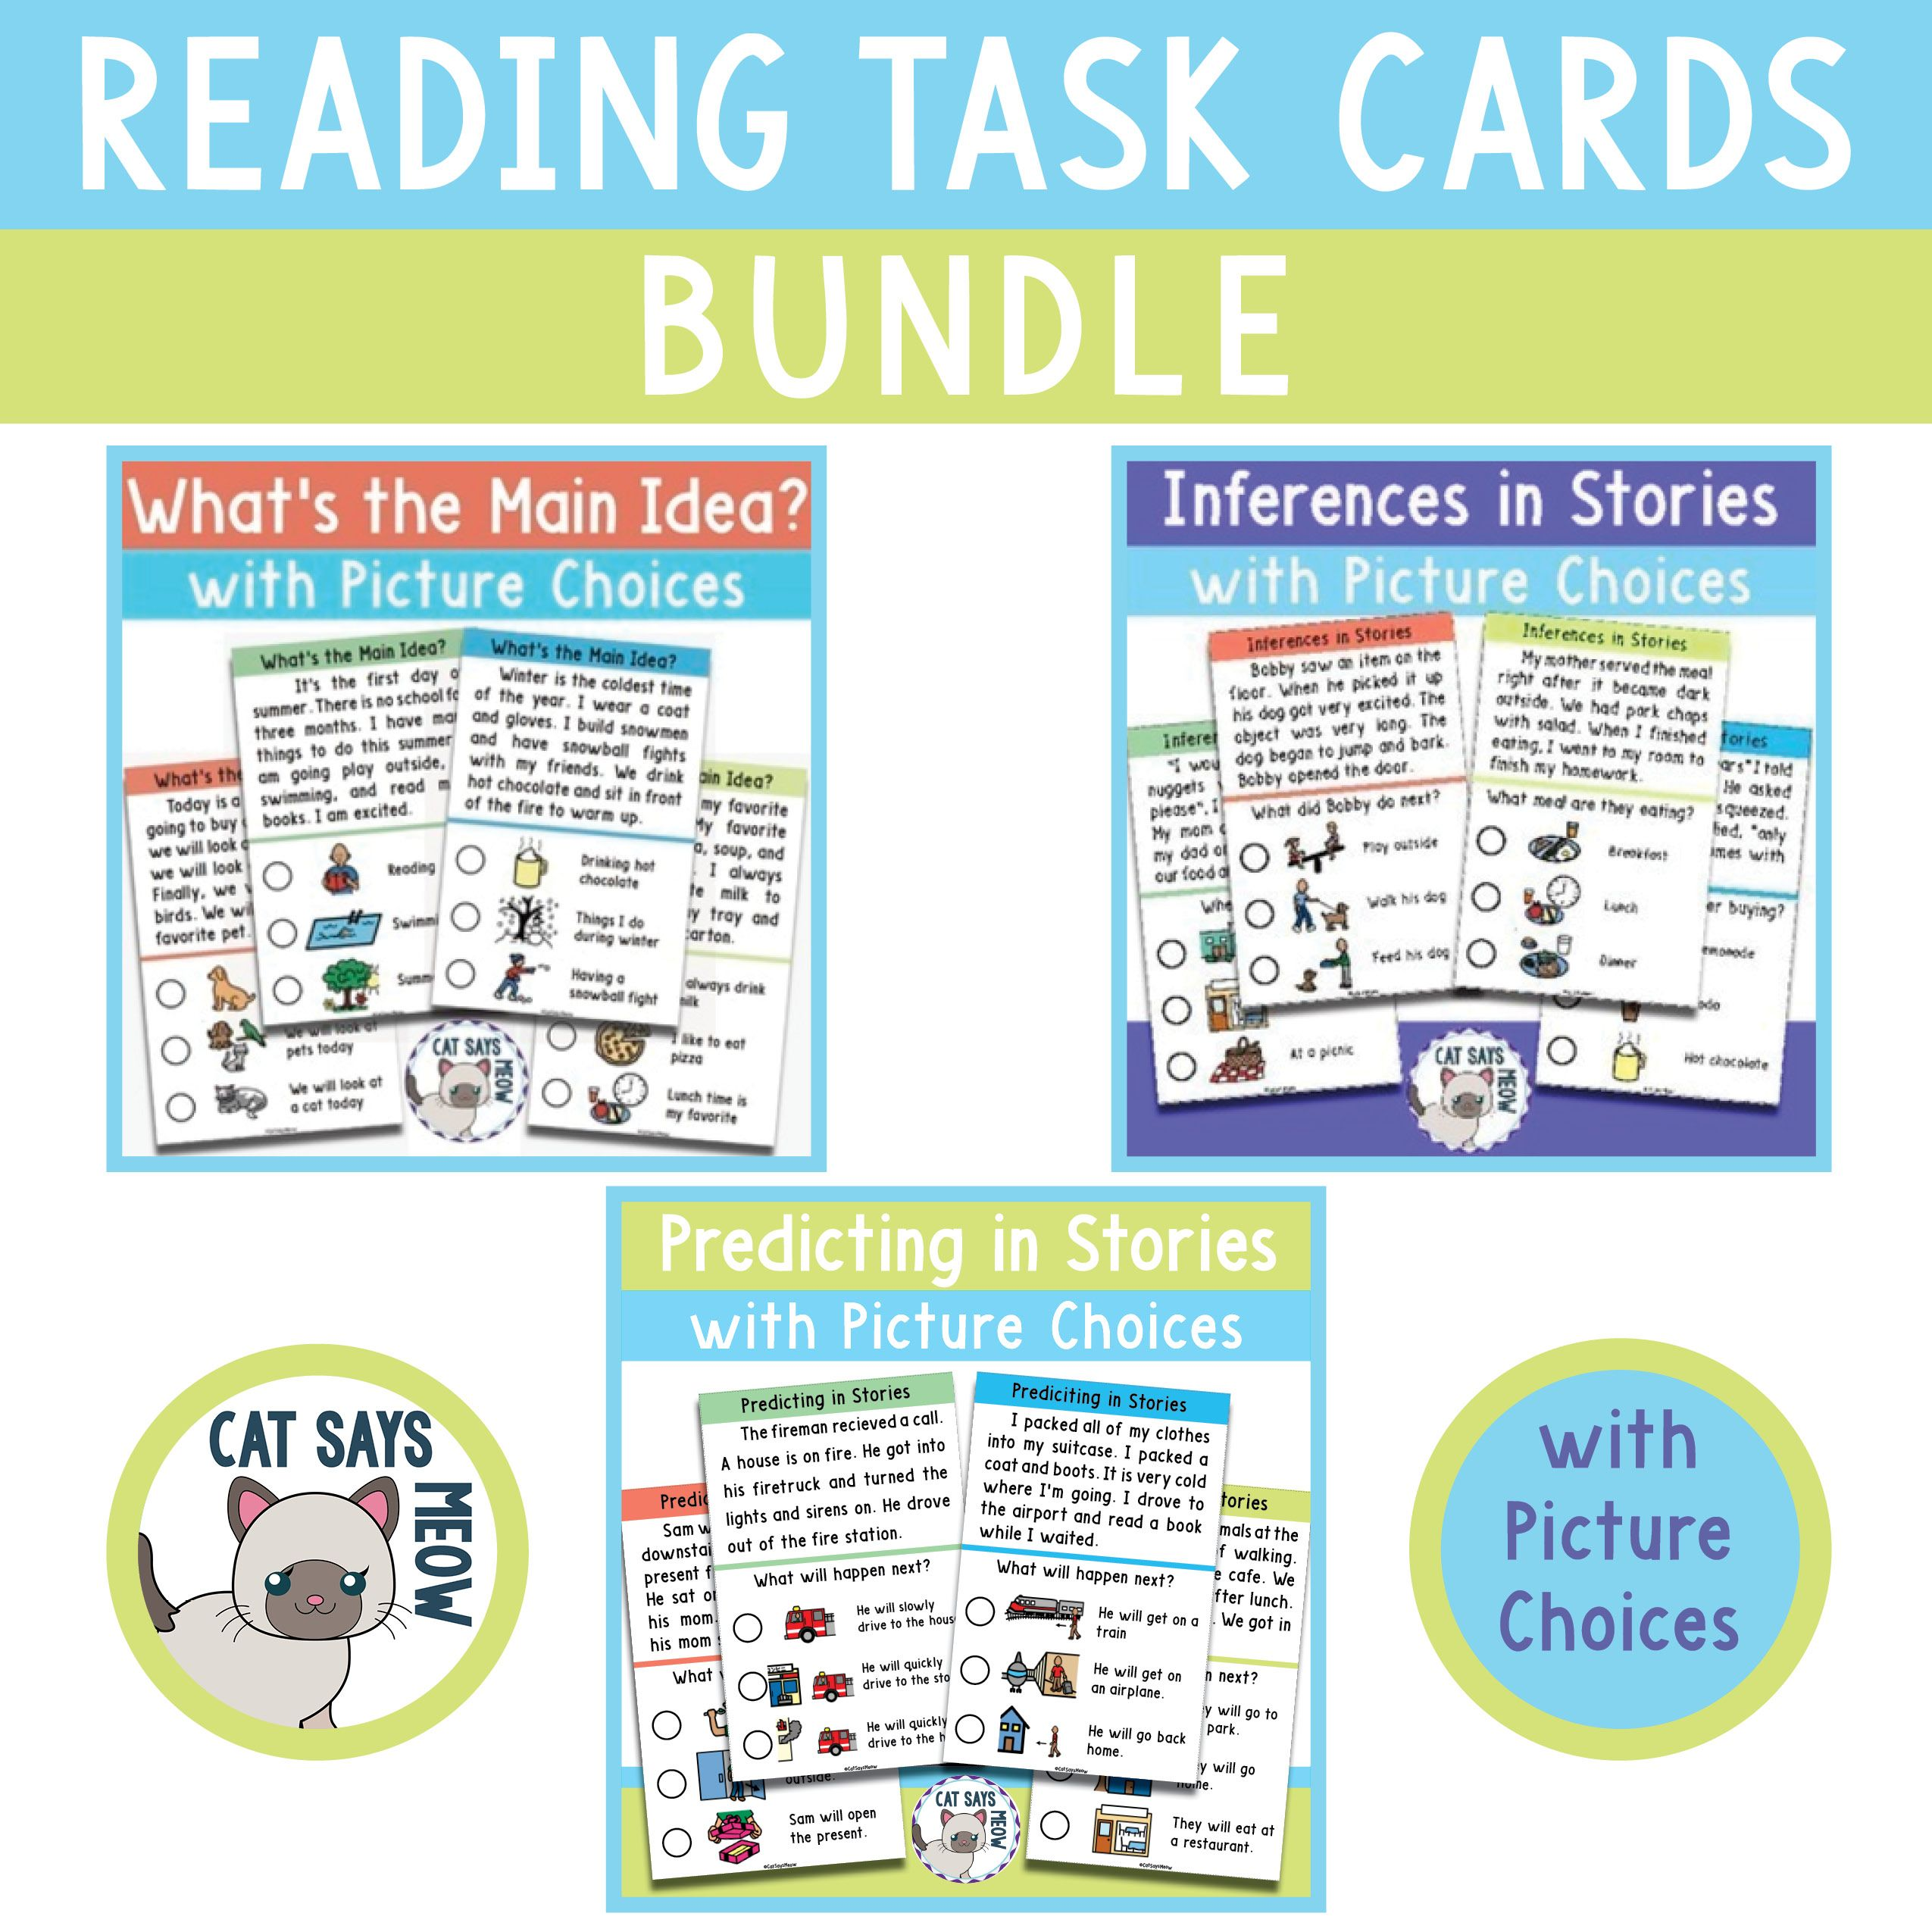 Reading Task Cards With Picture Choices Bundle